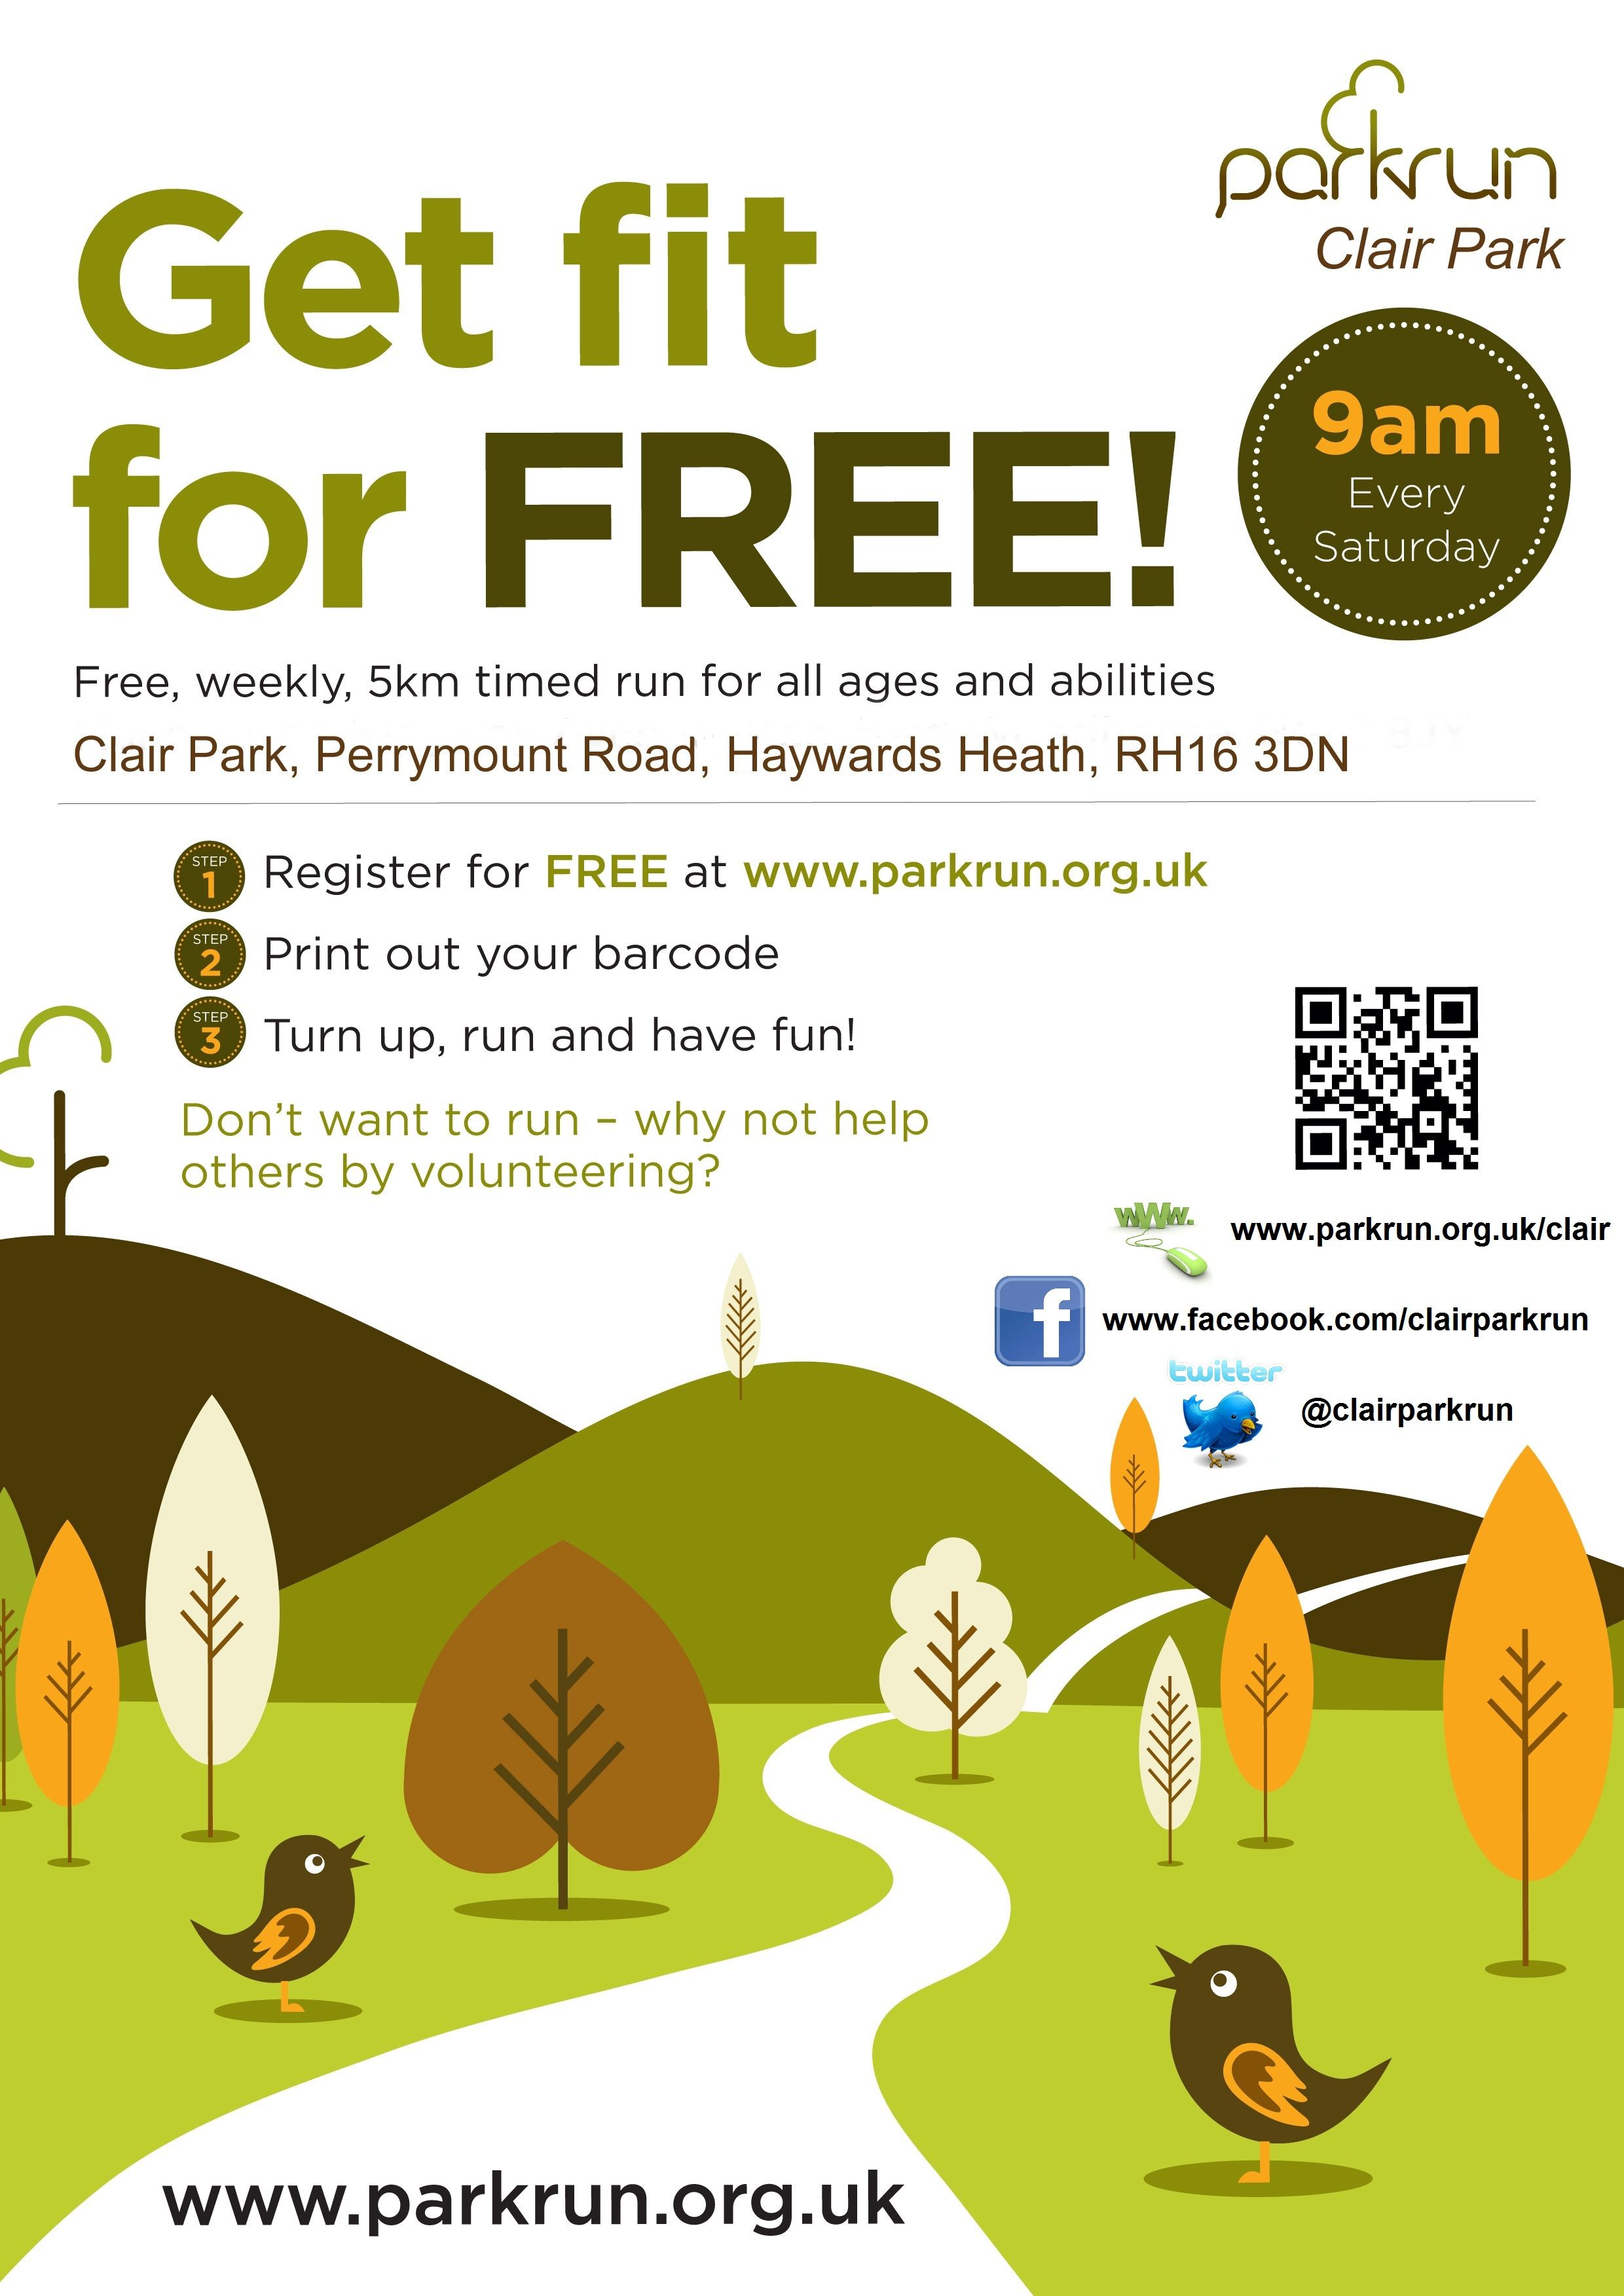 Parkrun Logo Google Search With Images Free Prints Have Fun Helping Others